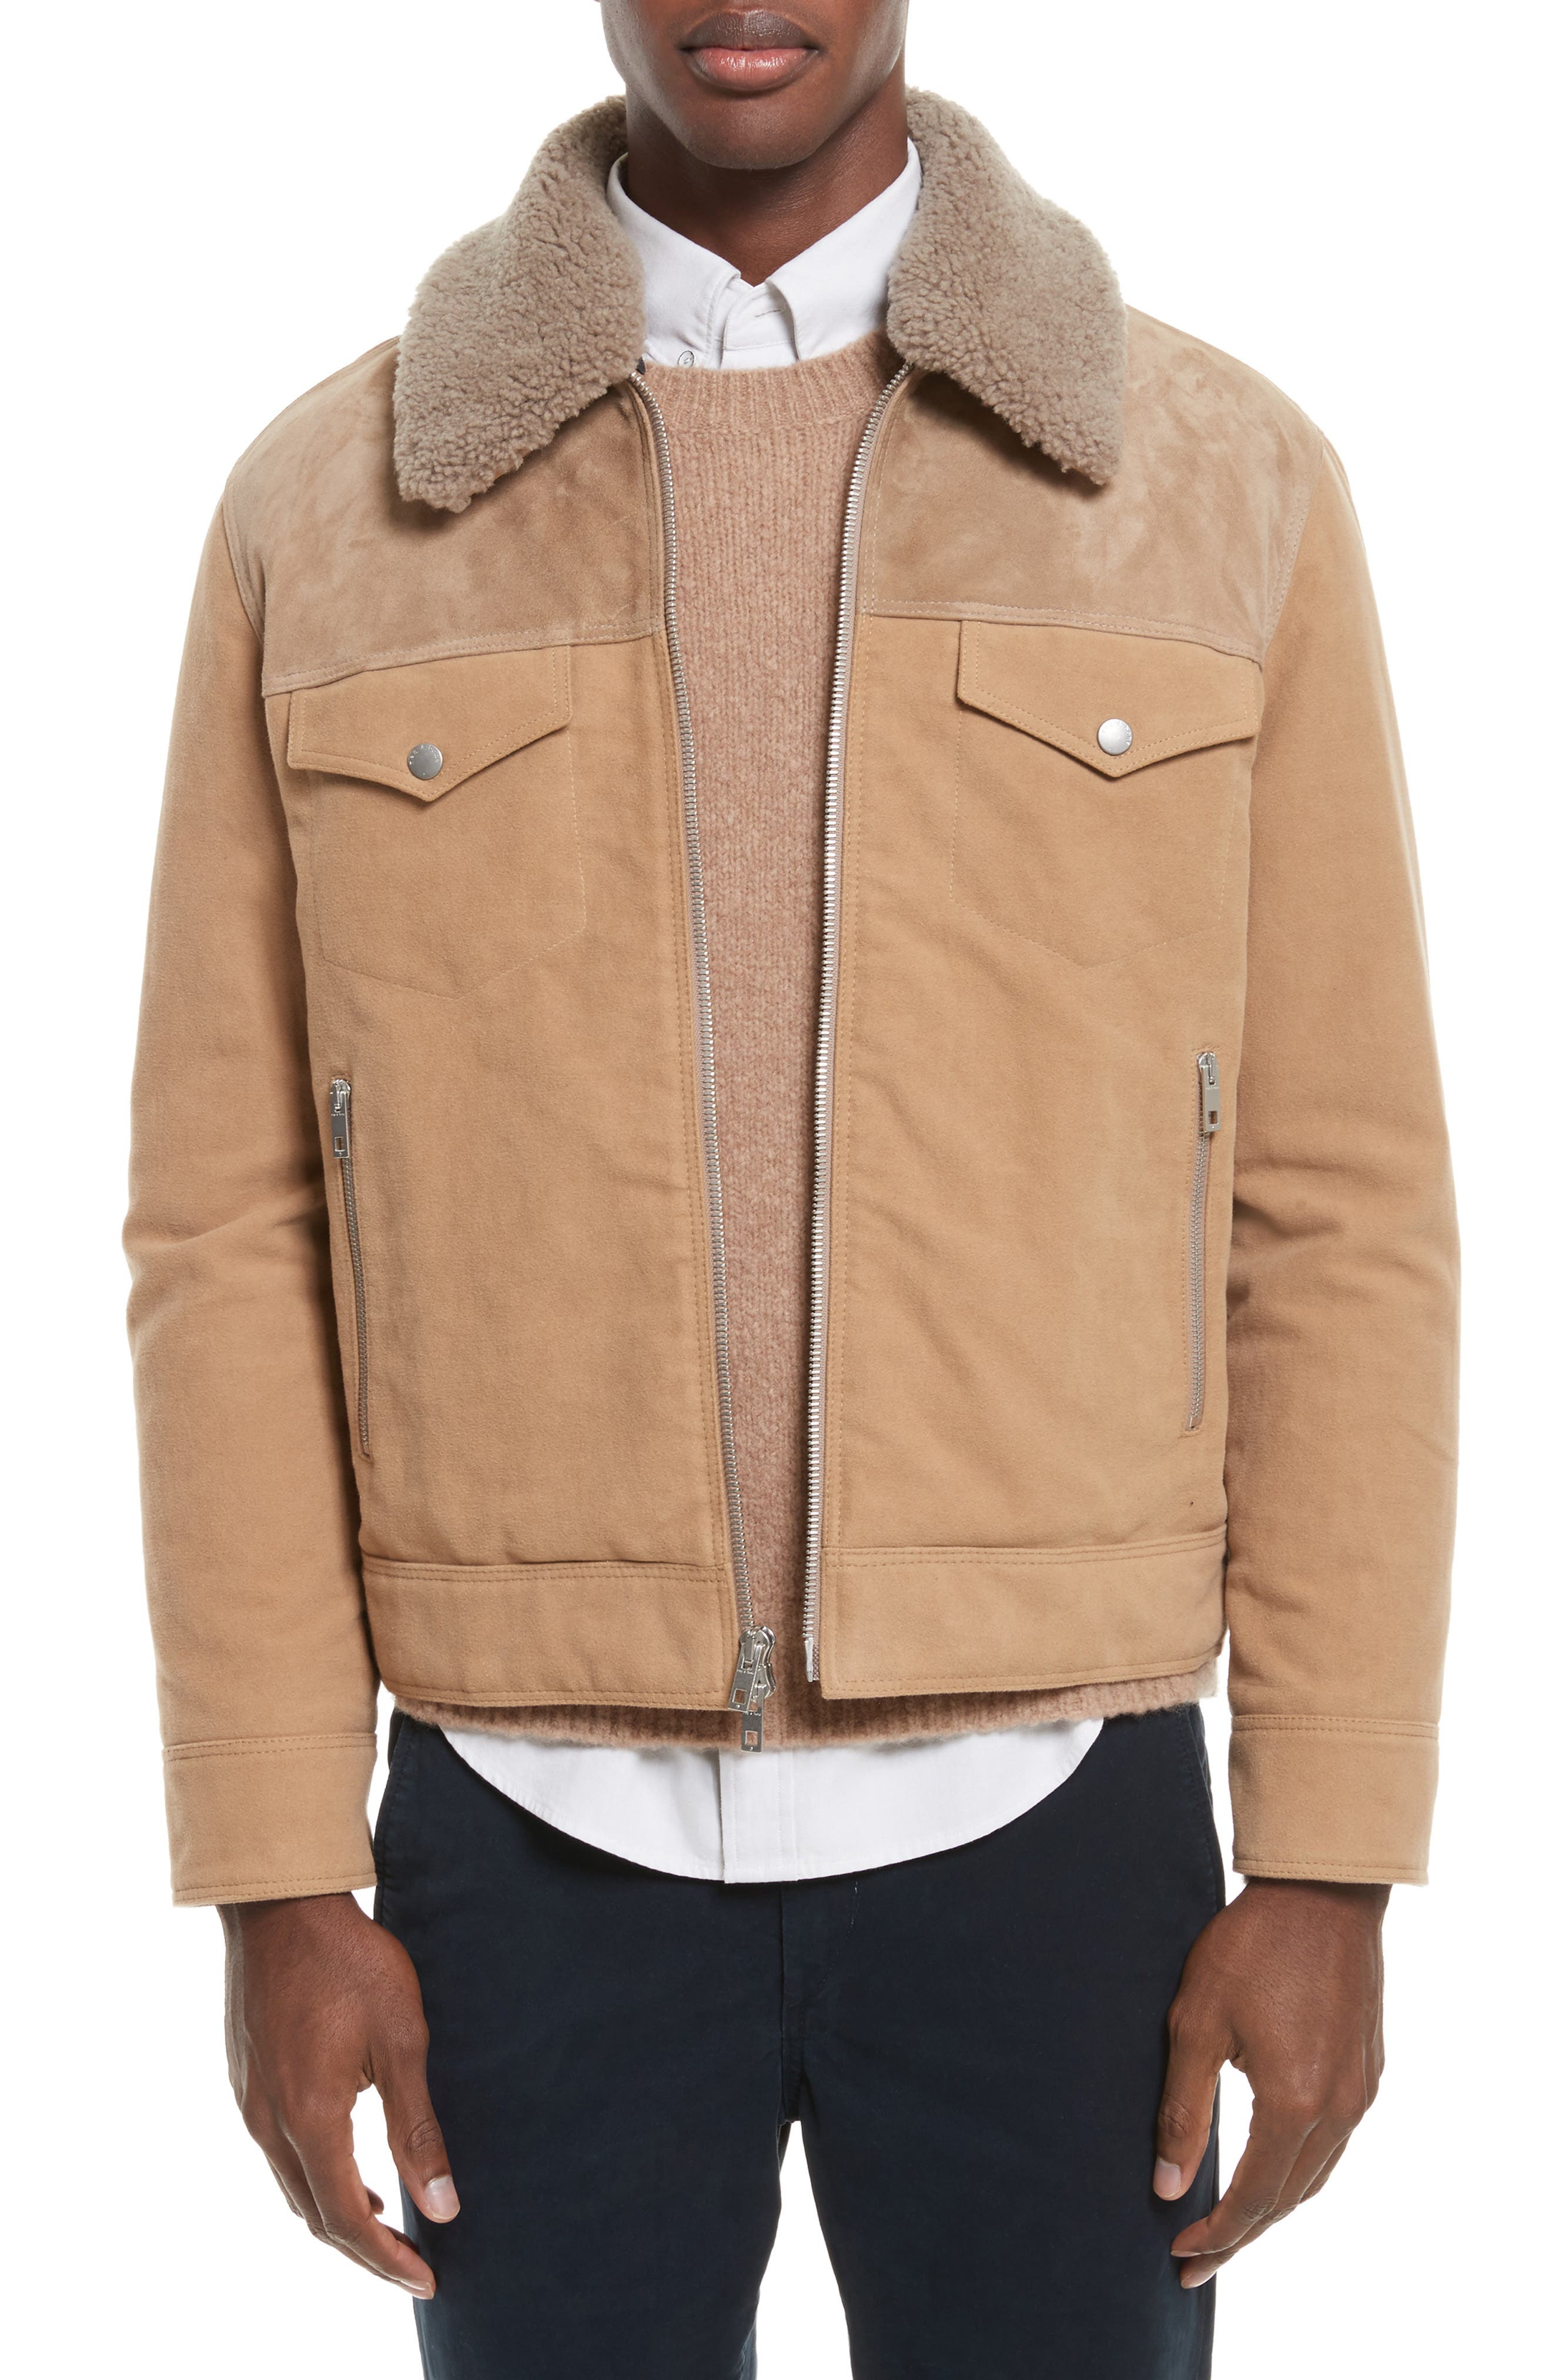 Matthew Work Jacket with Genuine Shearling Collar,                             Main thumbnail 1, color,                             Camel